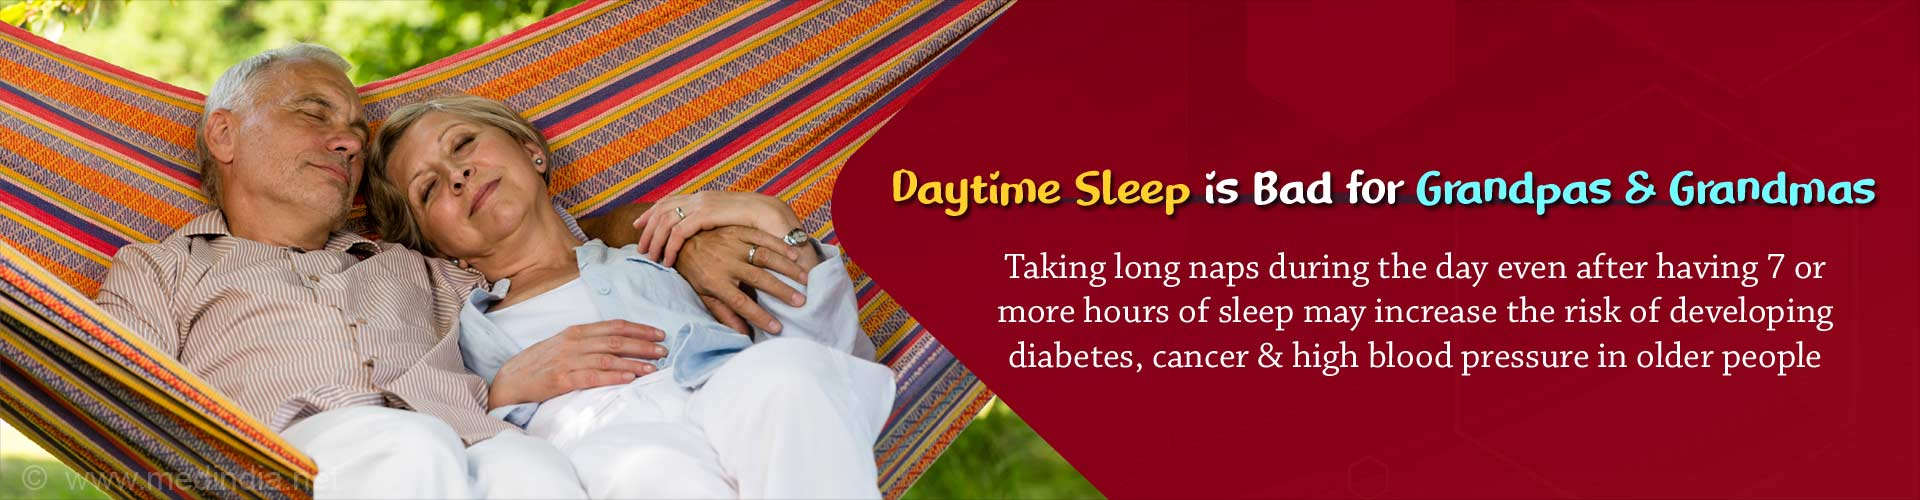 Daytime Sleep is Bad for Grandpas and Grandmas. Taking long naps during the day even after having 7 or more hours of sleep may increase the risk of developing diabetes, cancer and high blood pressure in older people.